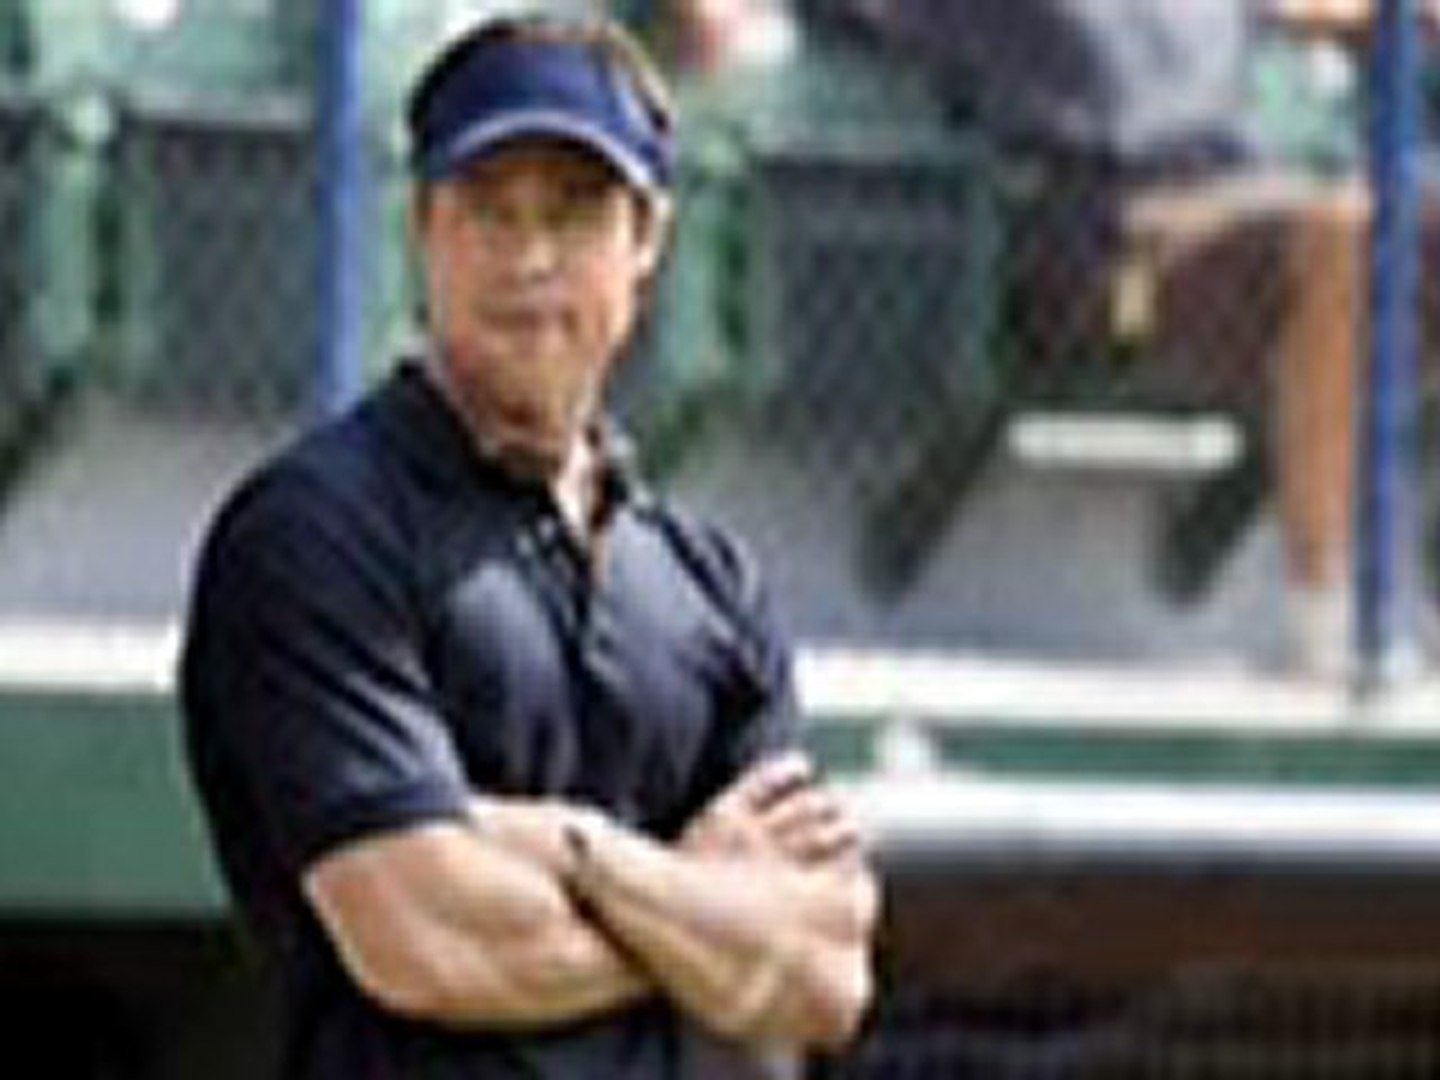 Moneyball (2011) Part 1/15 Full Free HD Movie-Moneyball (2011) Trailer.